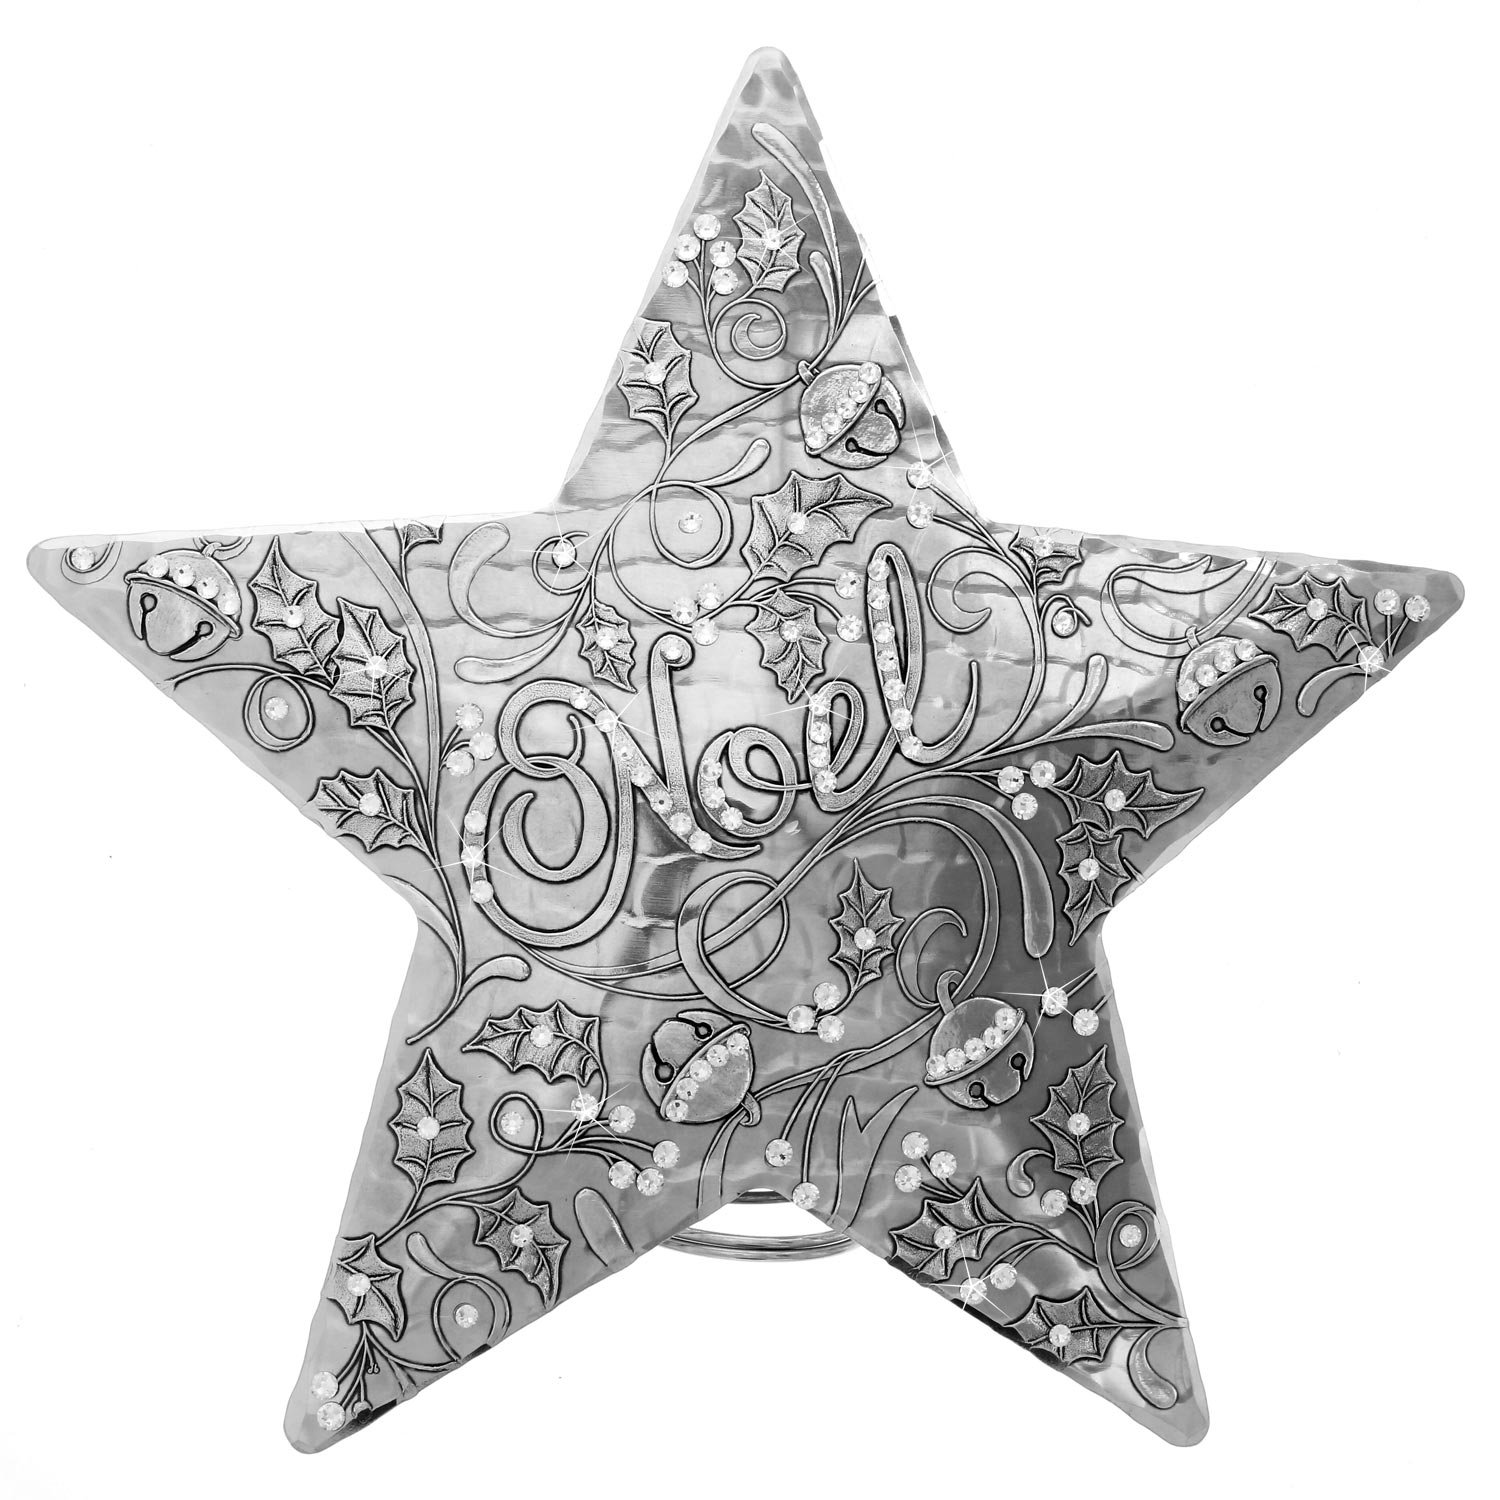 Wendell August Noel Centennial Star Tree Topper with Swarovski Crystals